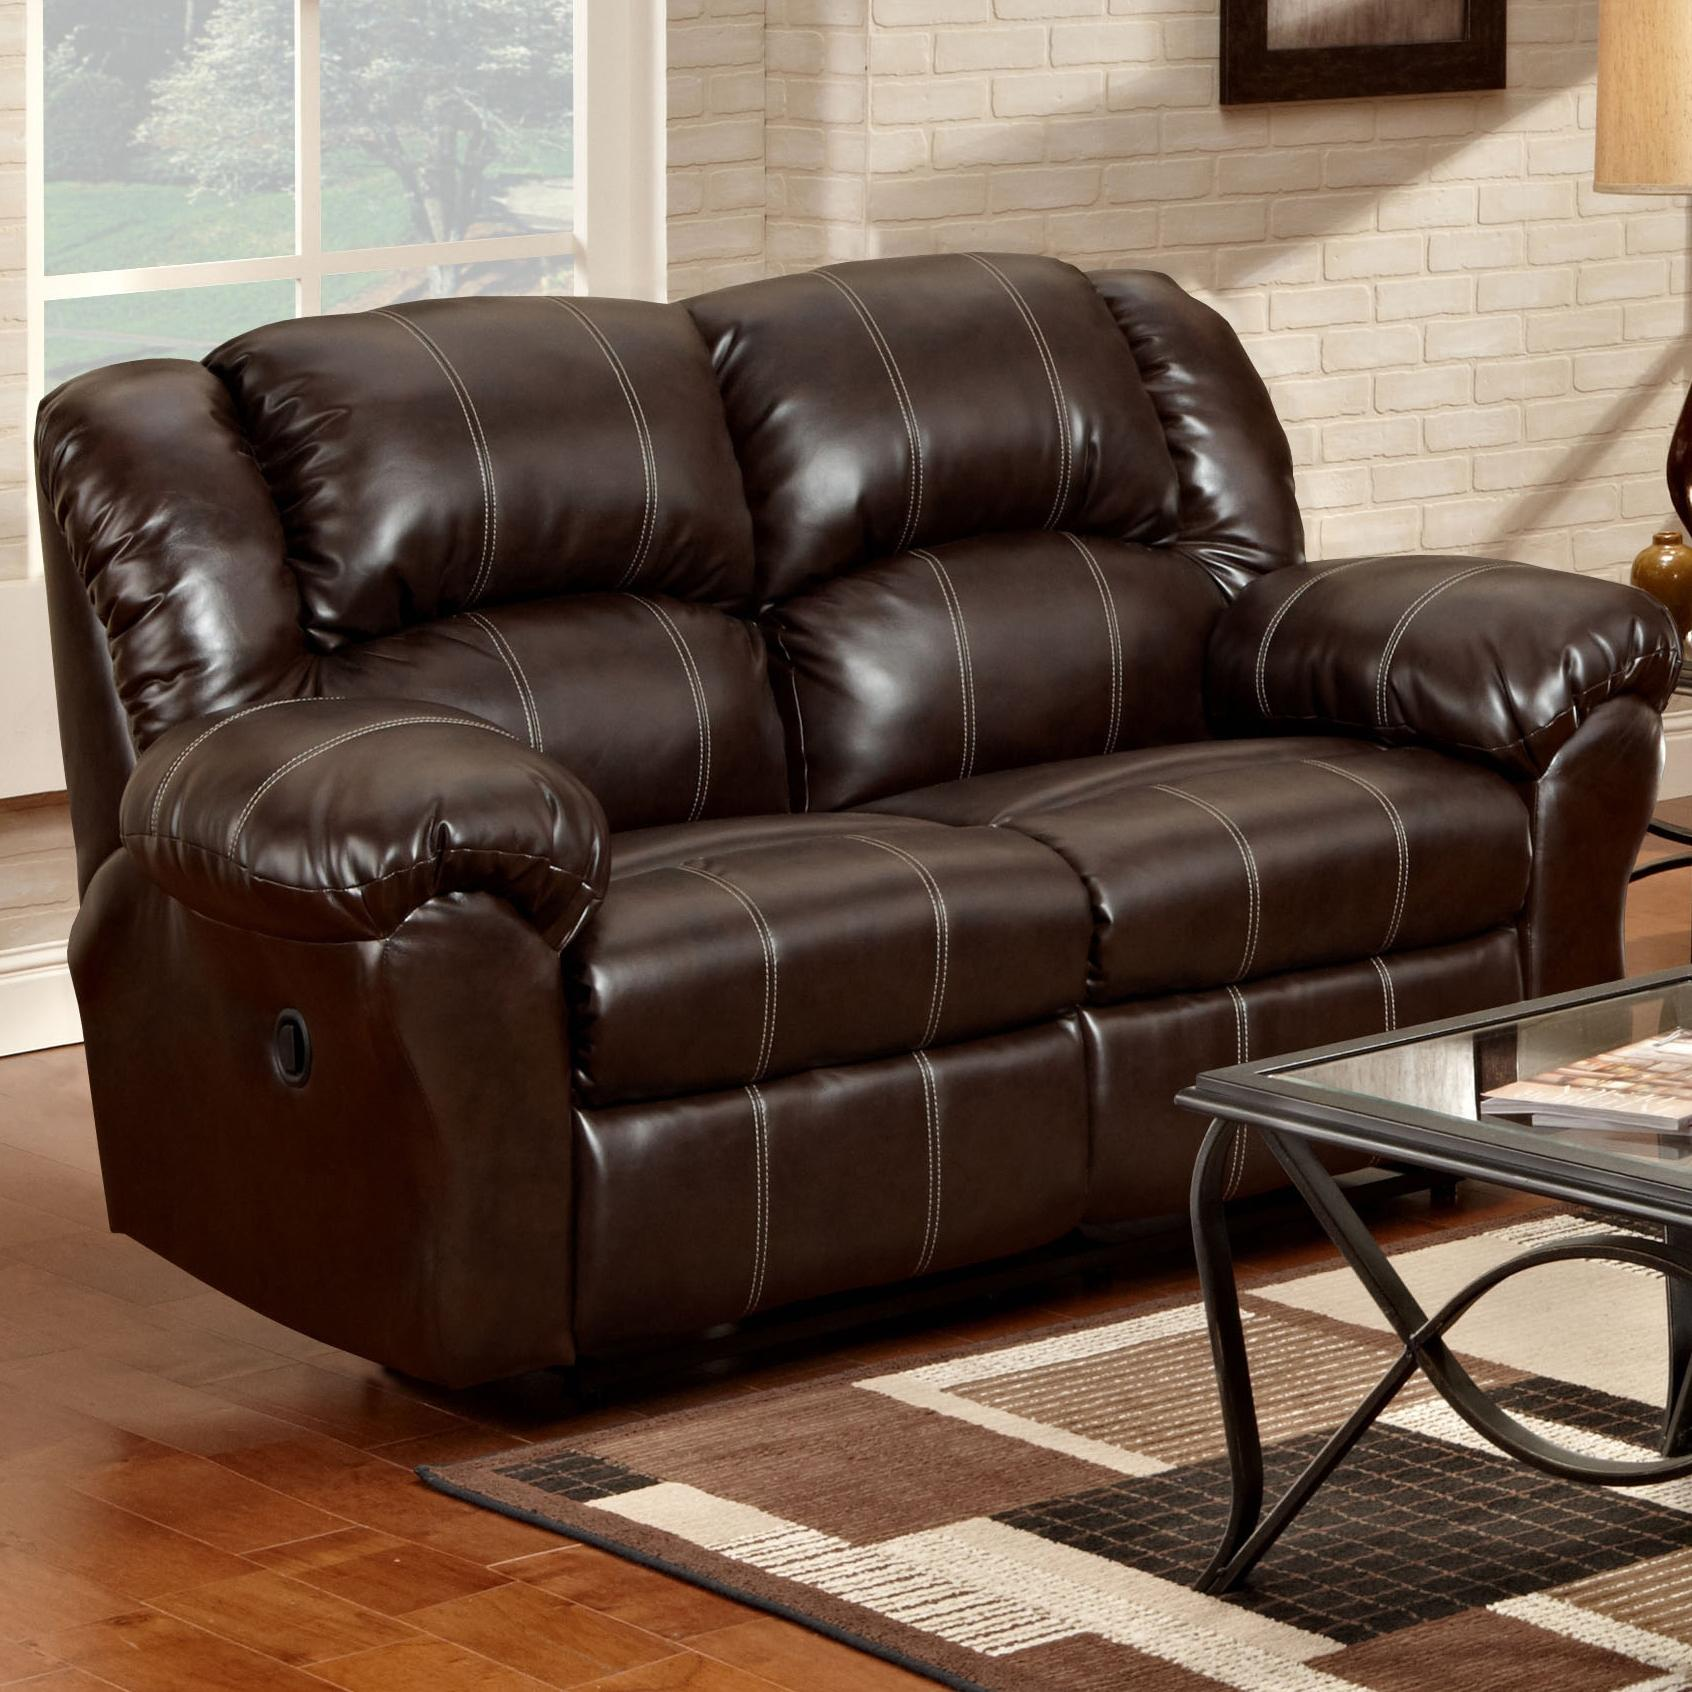 Reclining Loveseat with Pillow Arms 1000 by Affordable